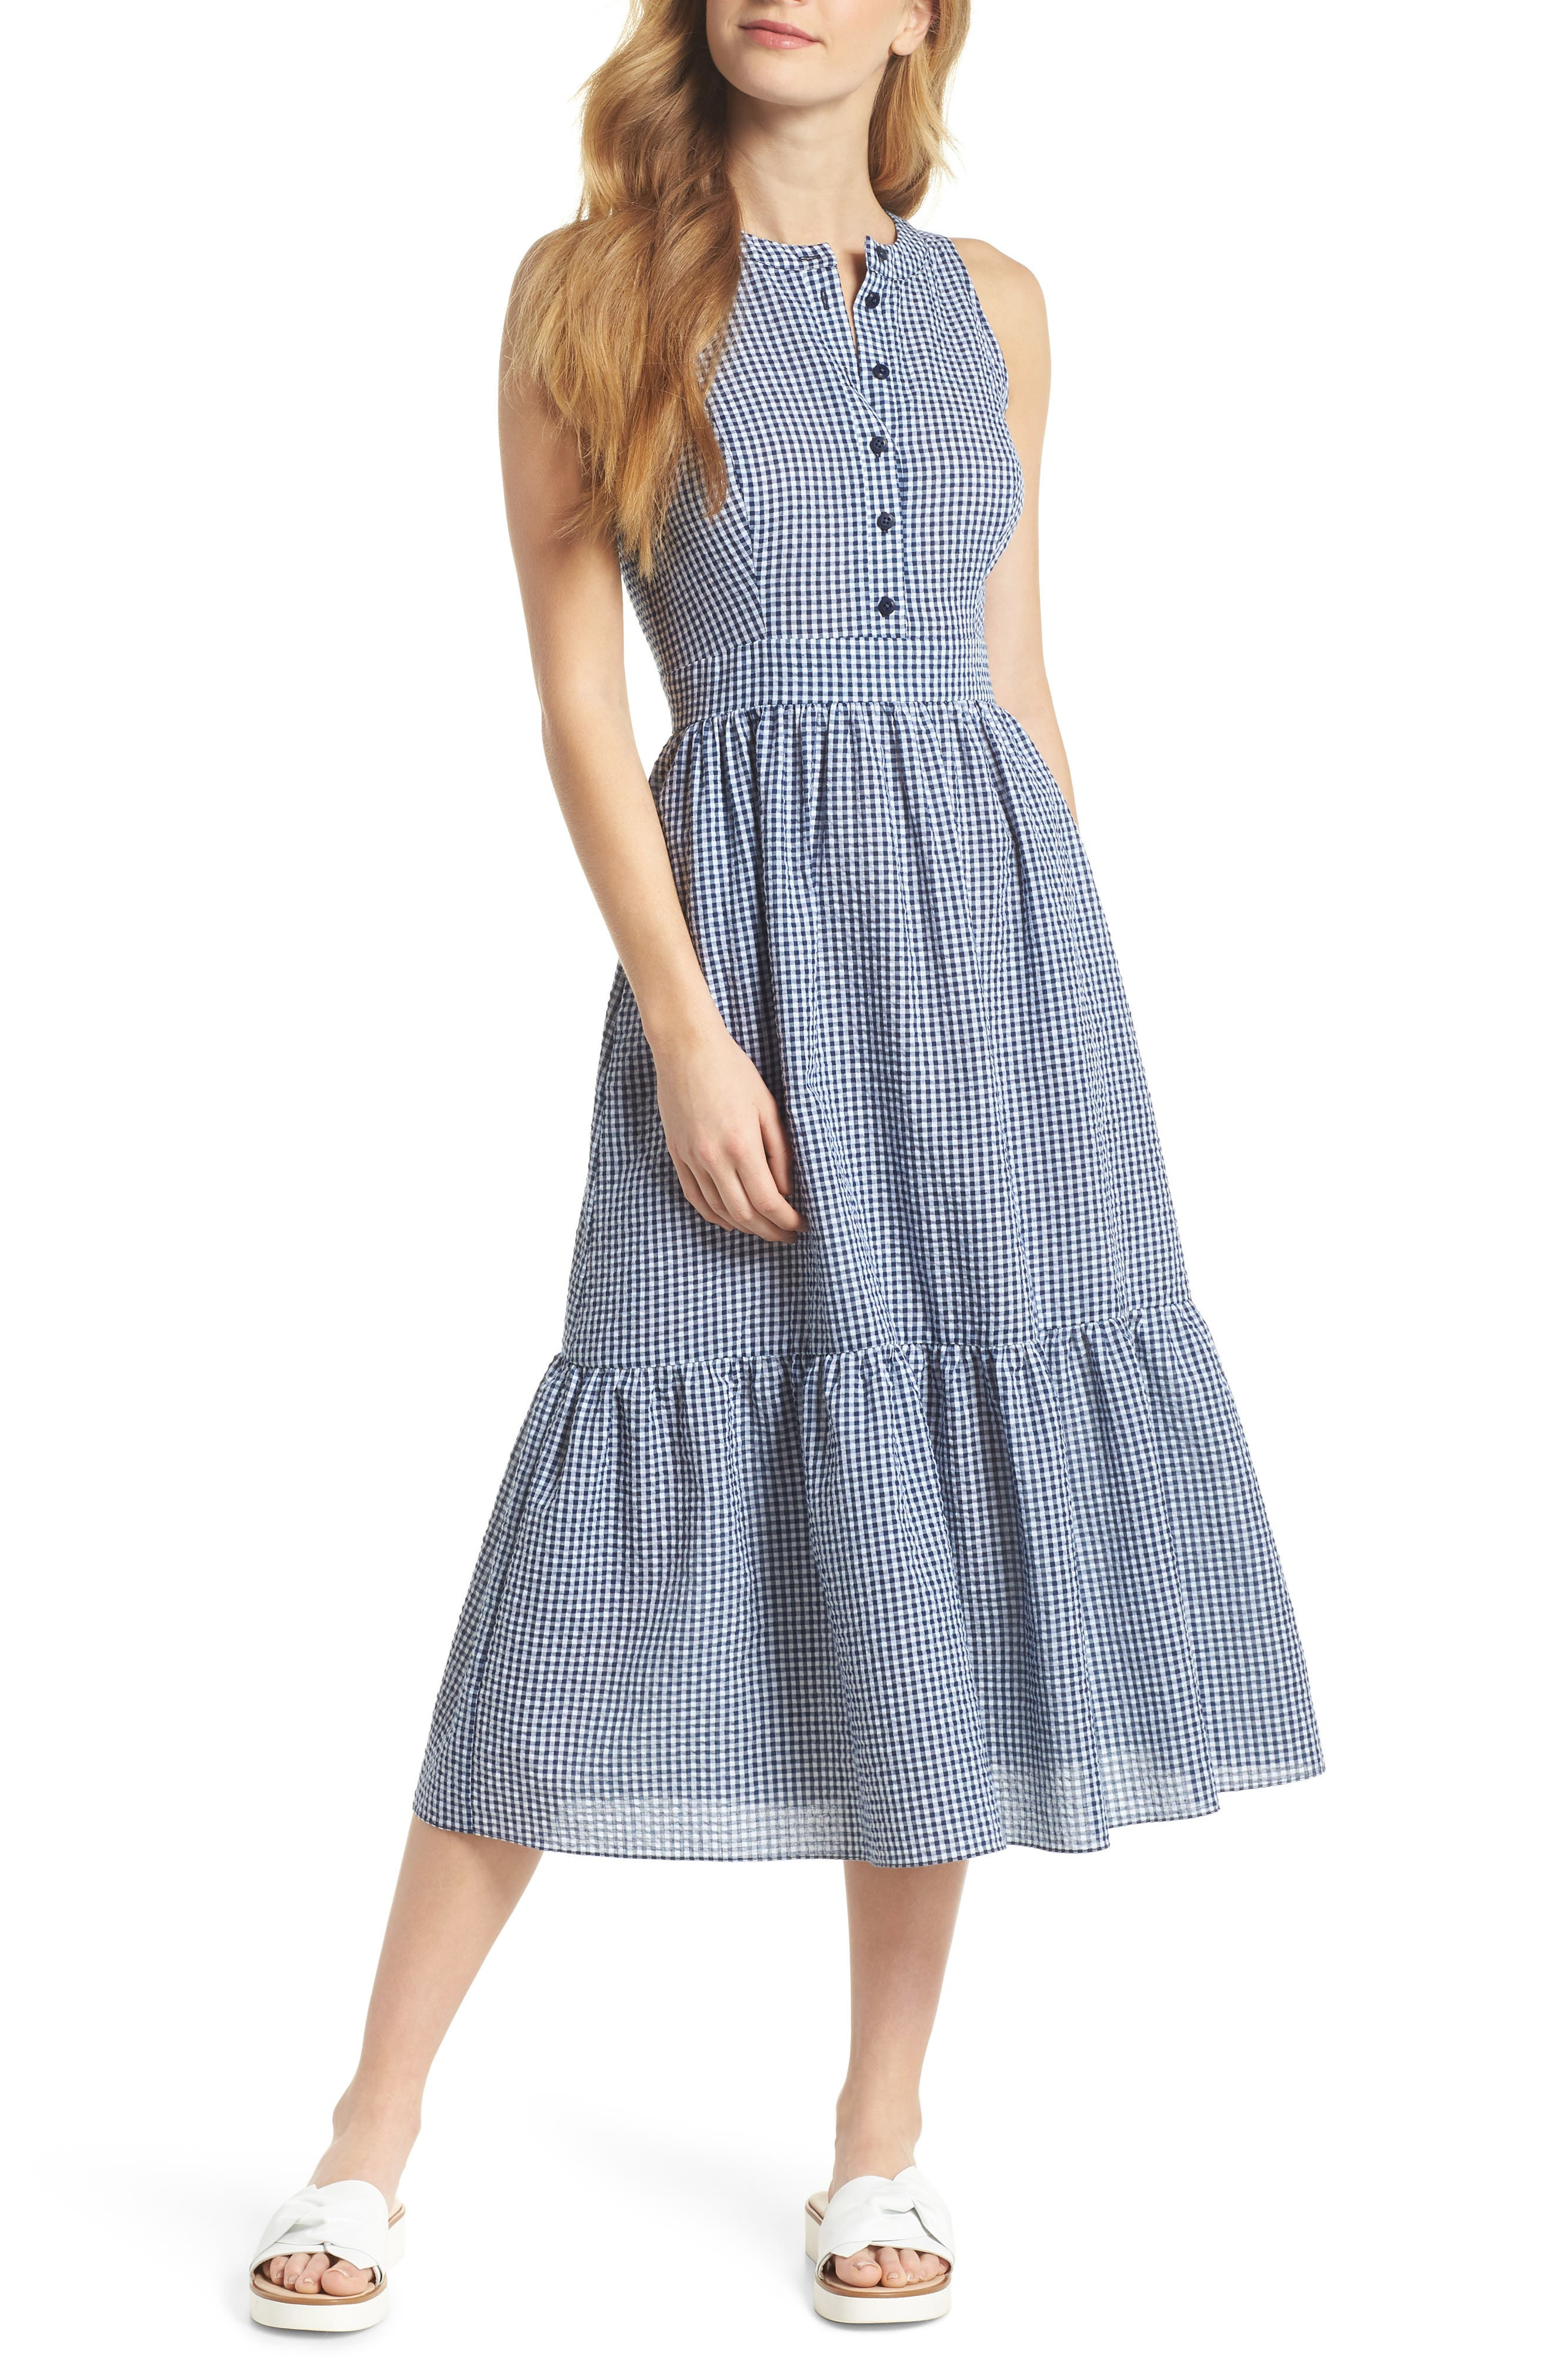 Ardith Gingham Fit & Flare Midi Dress,                             Main thumbnail 1, color,                             Blue/ White